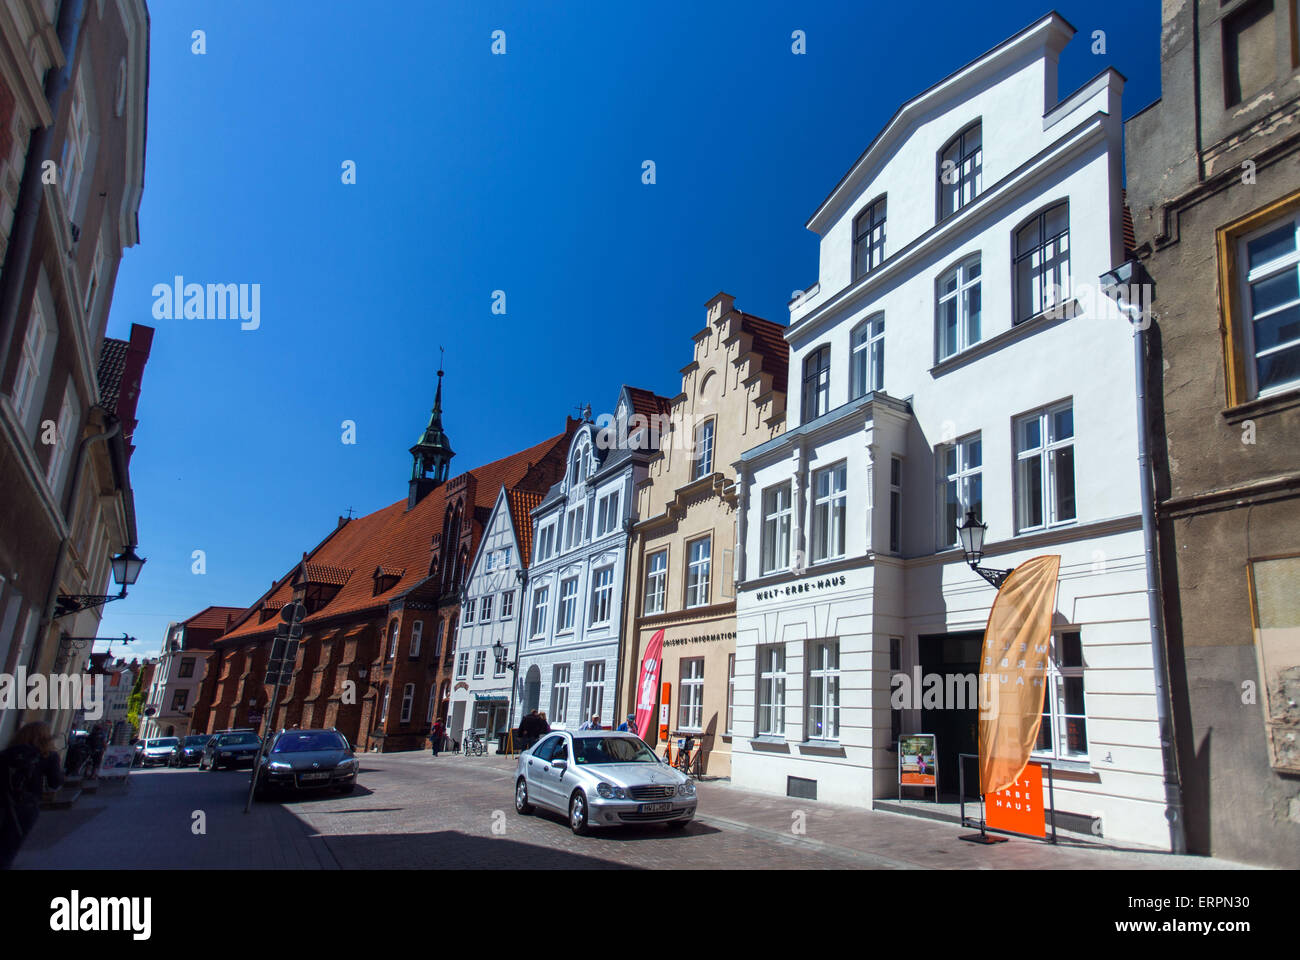 Wismar, Germany. 04th June, 2015. The World Heritage House can be seen in Wismar, Germany, 04 June 2015. The heritage - Stock Image